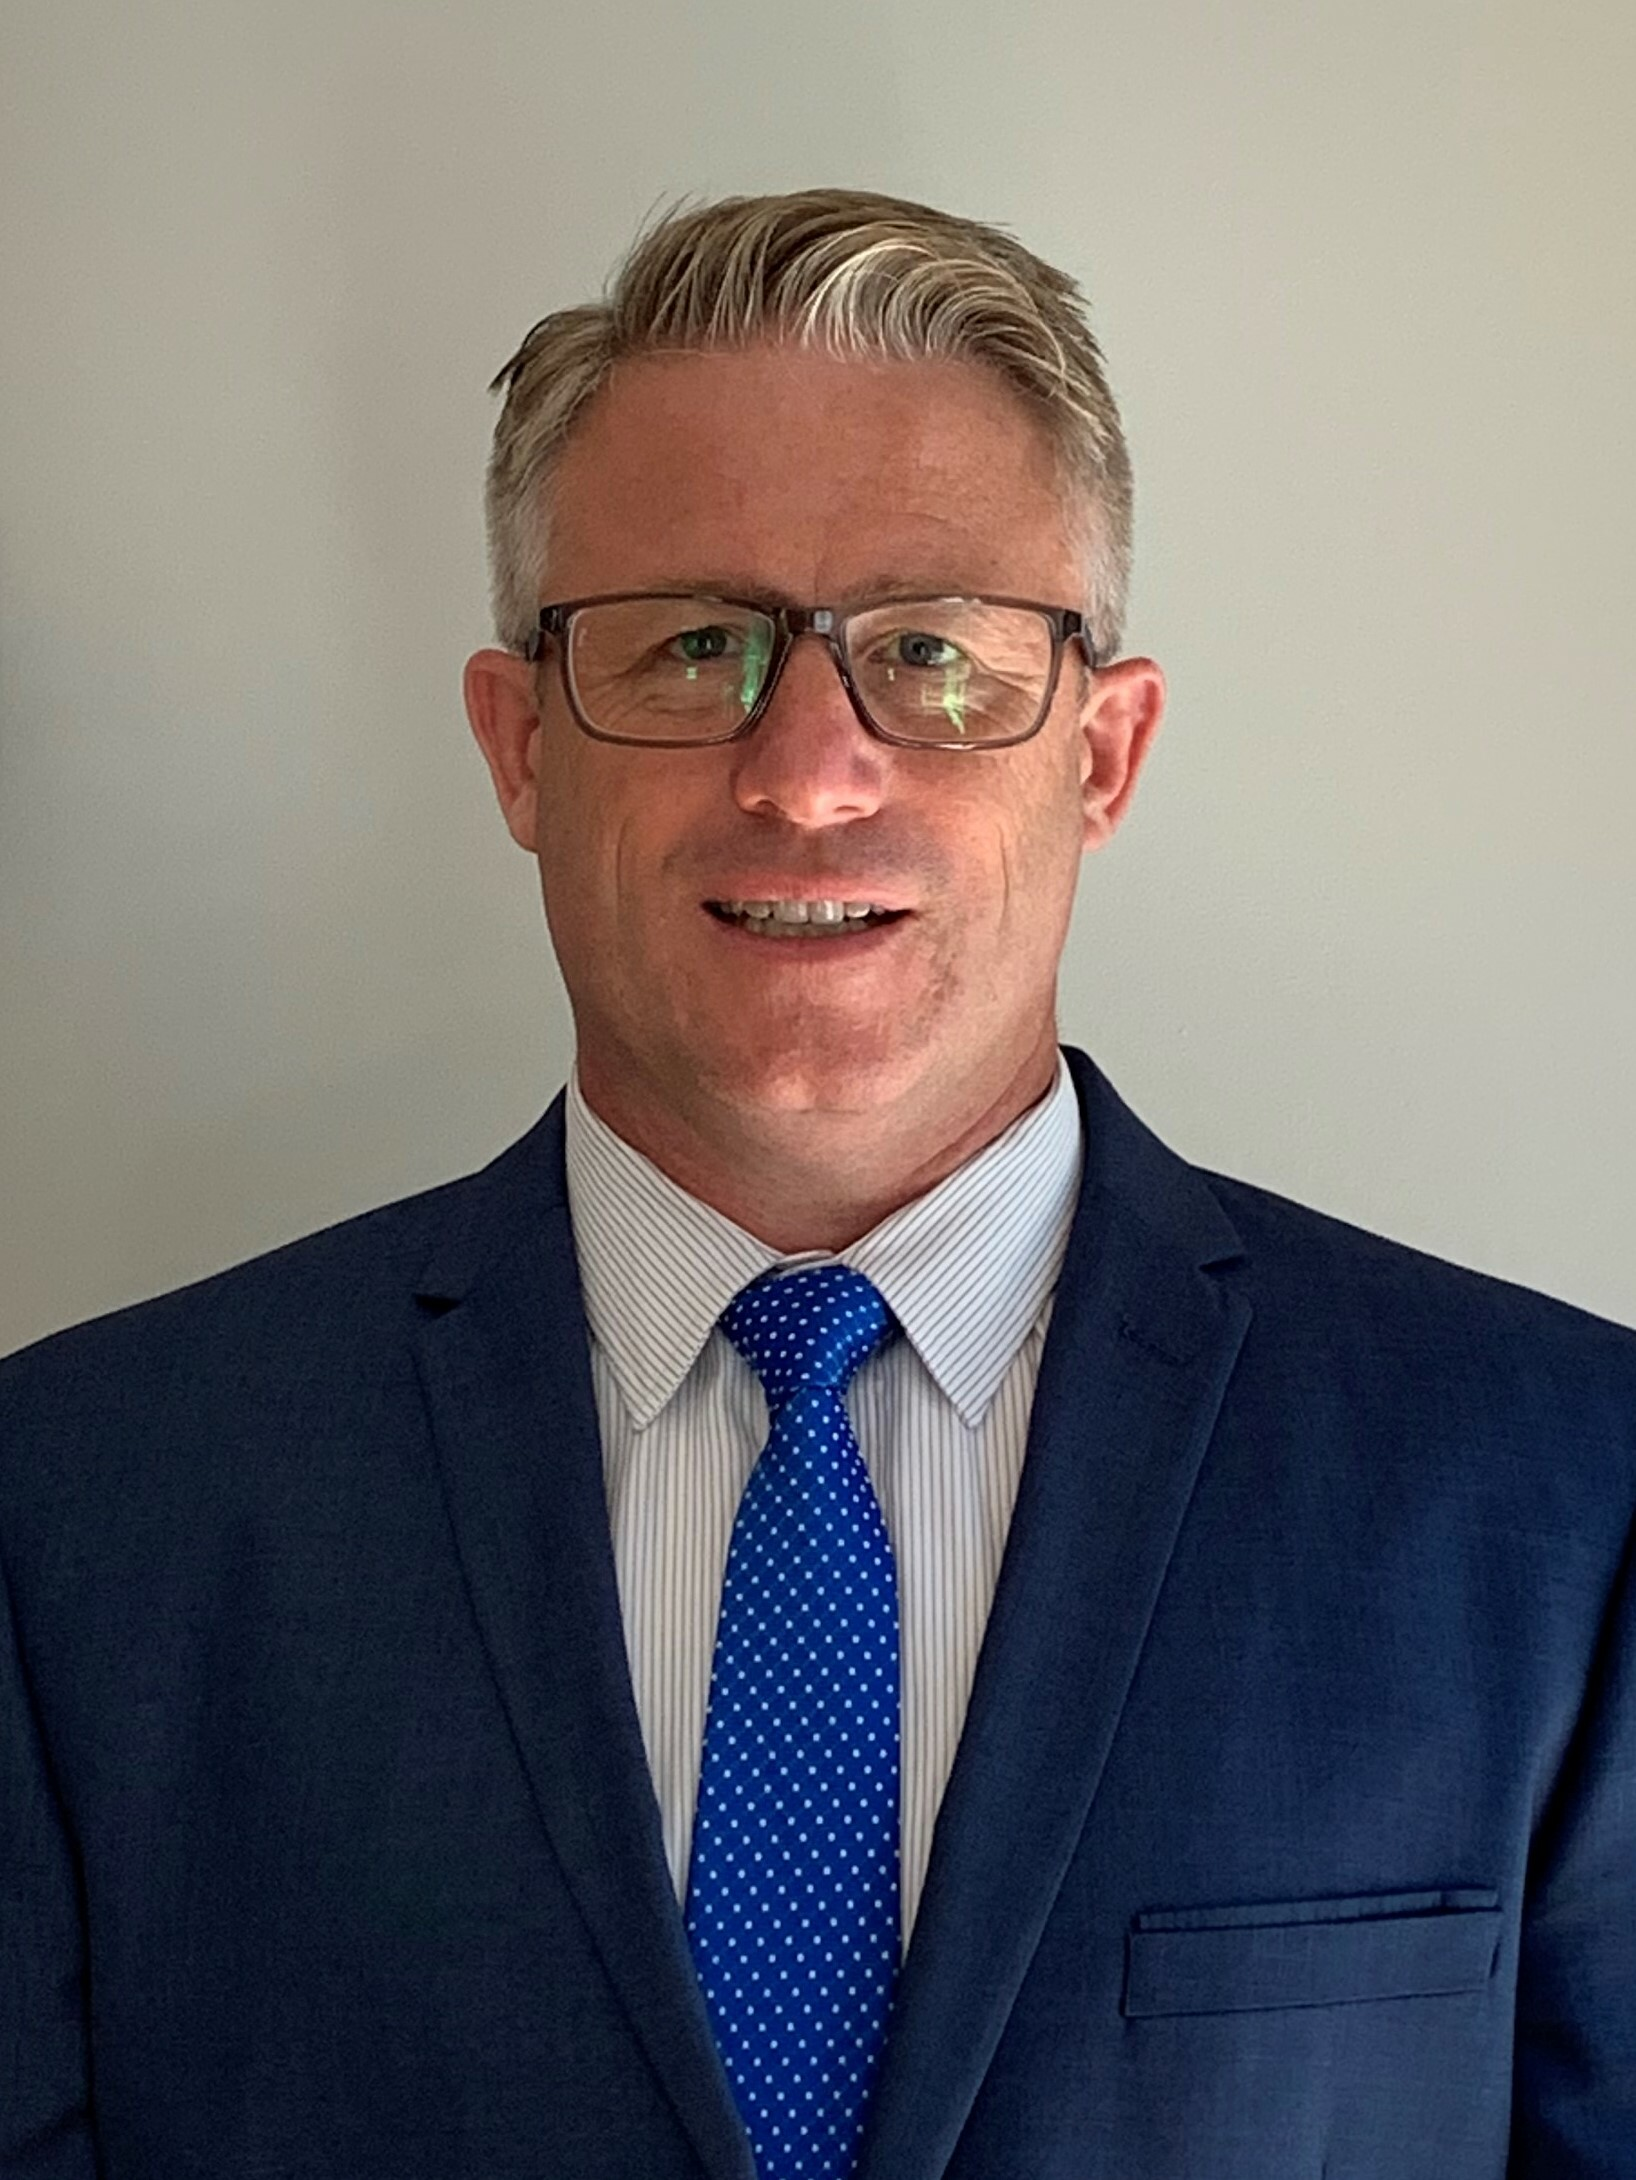 The Southampton School District has appointed Michael Connell as the new Southampton Intermediate School assistant principal.